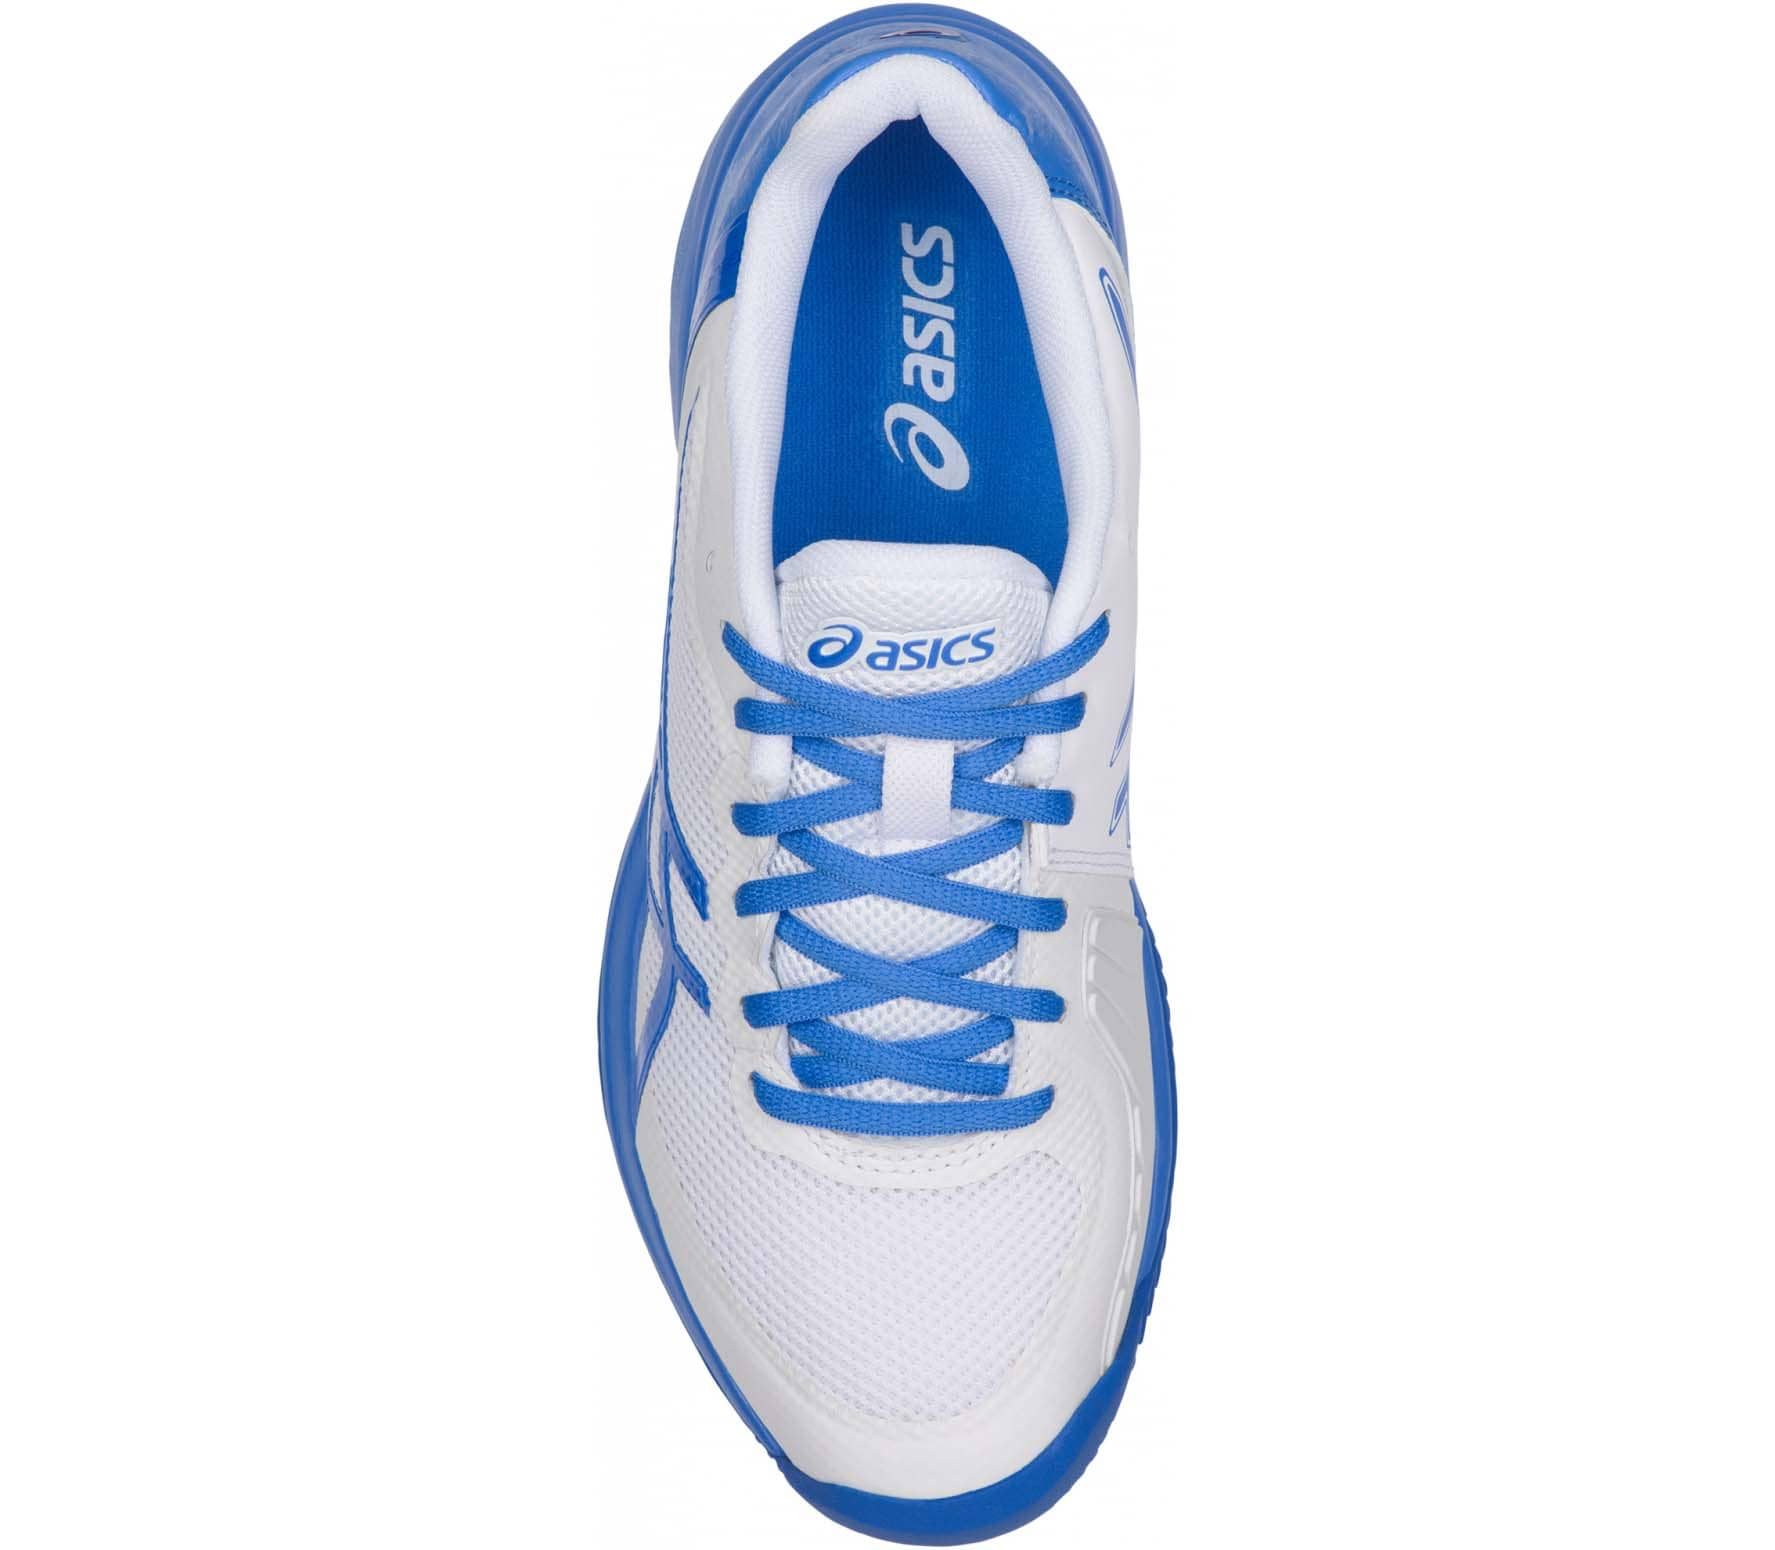 ASICS - Gel-Court Speed Clay Damen Tennisschuh (weiß/blau)